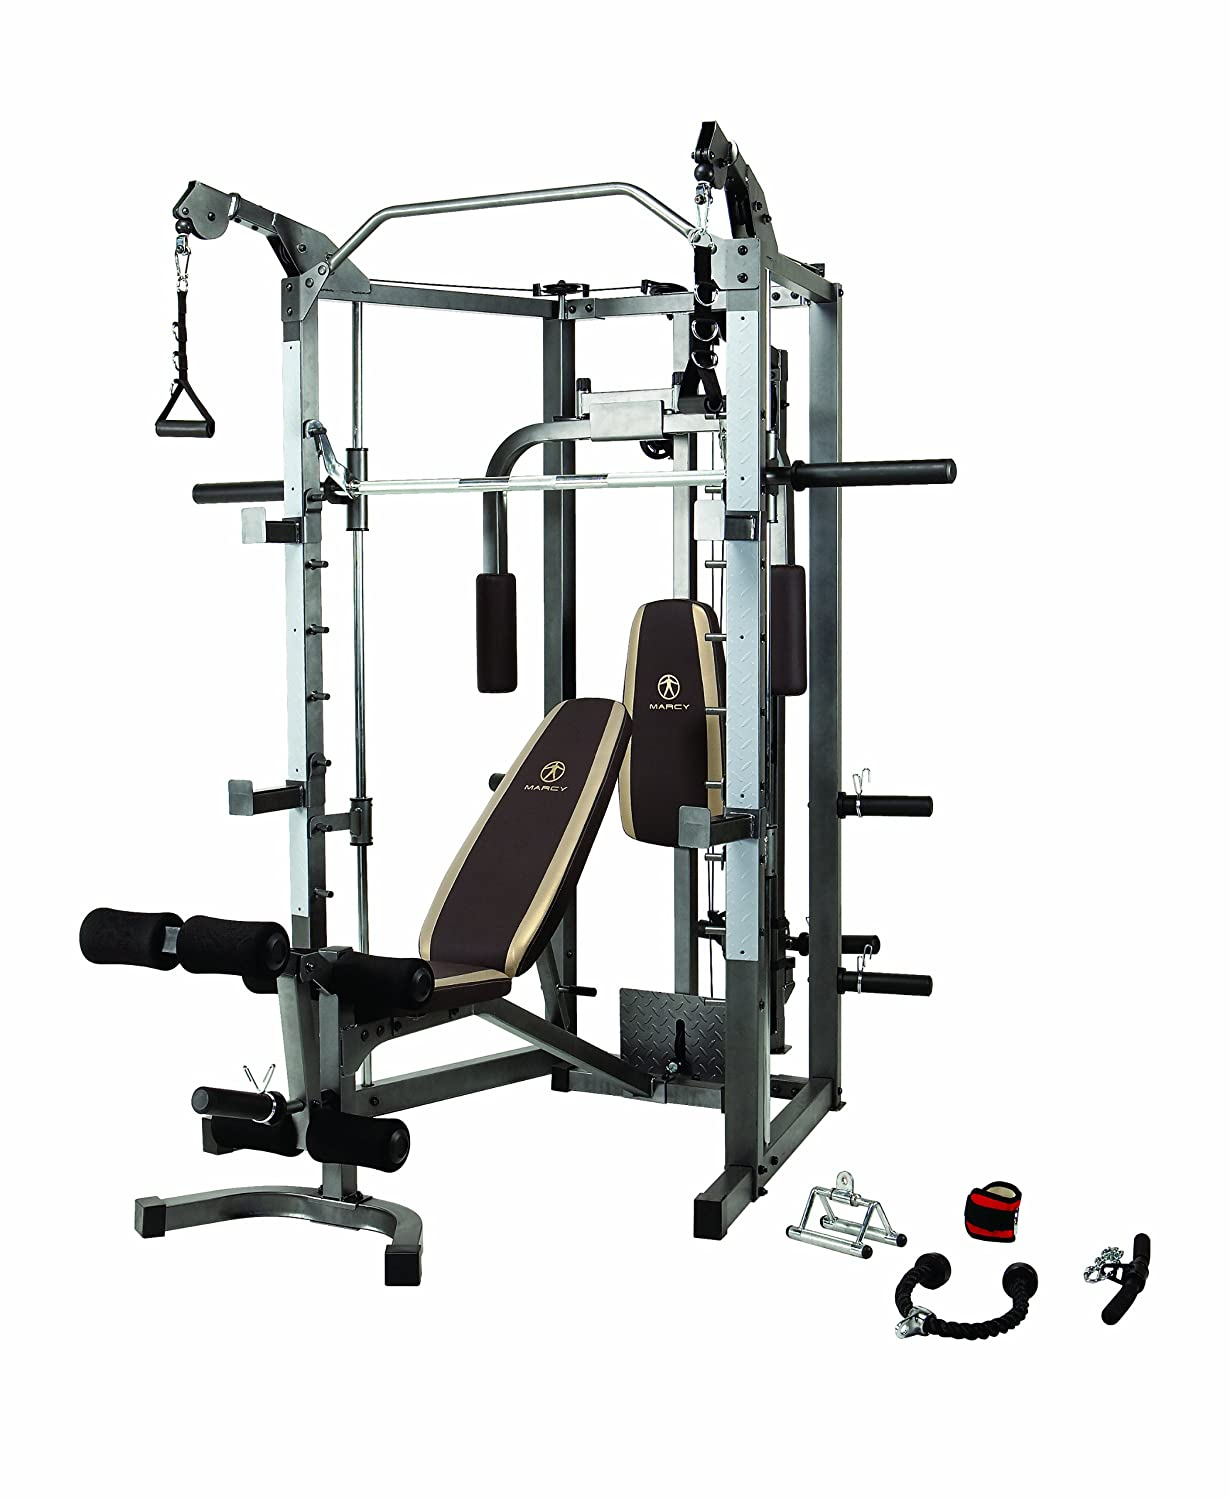 2017 Black Friday & Cyber Monday Fitness Equipment Deals